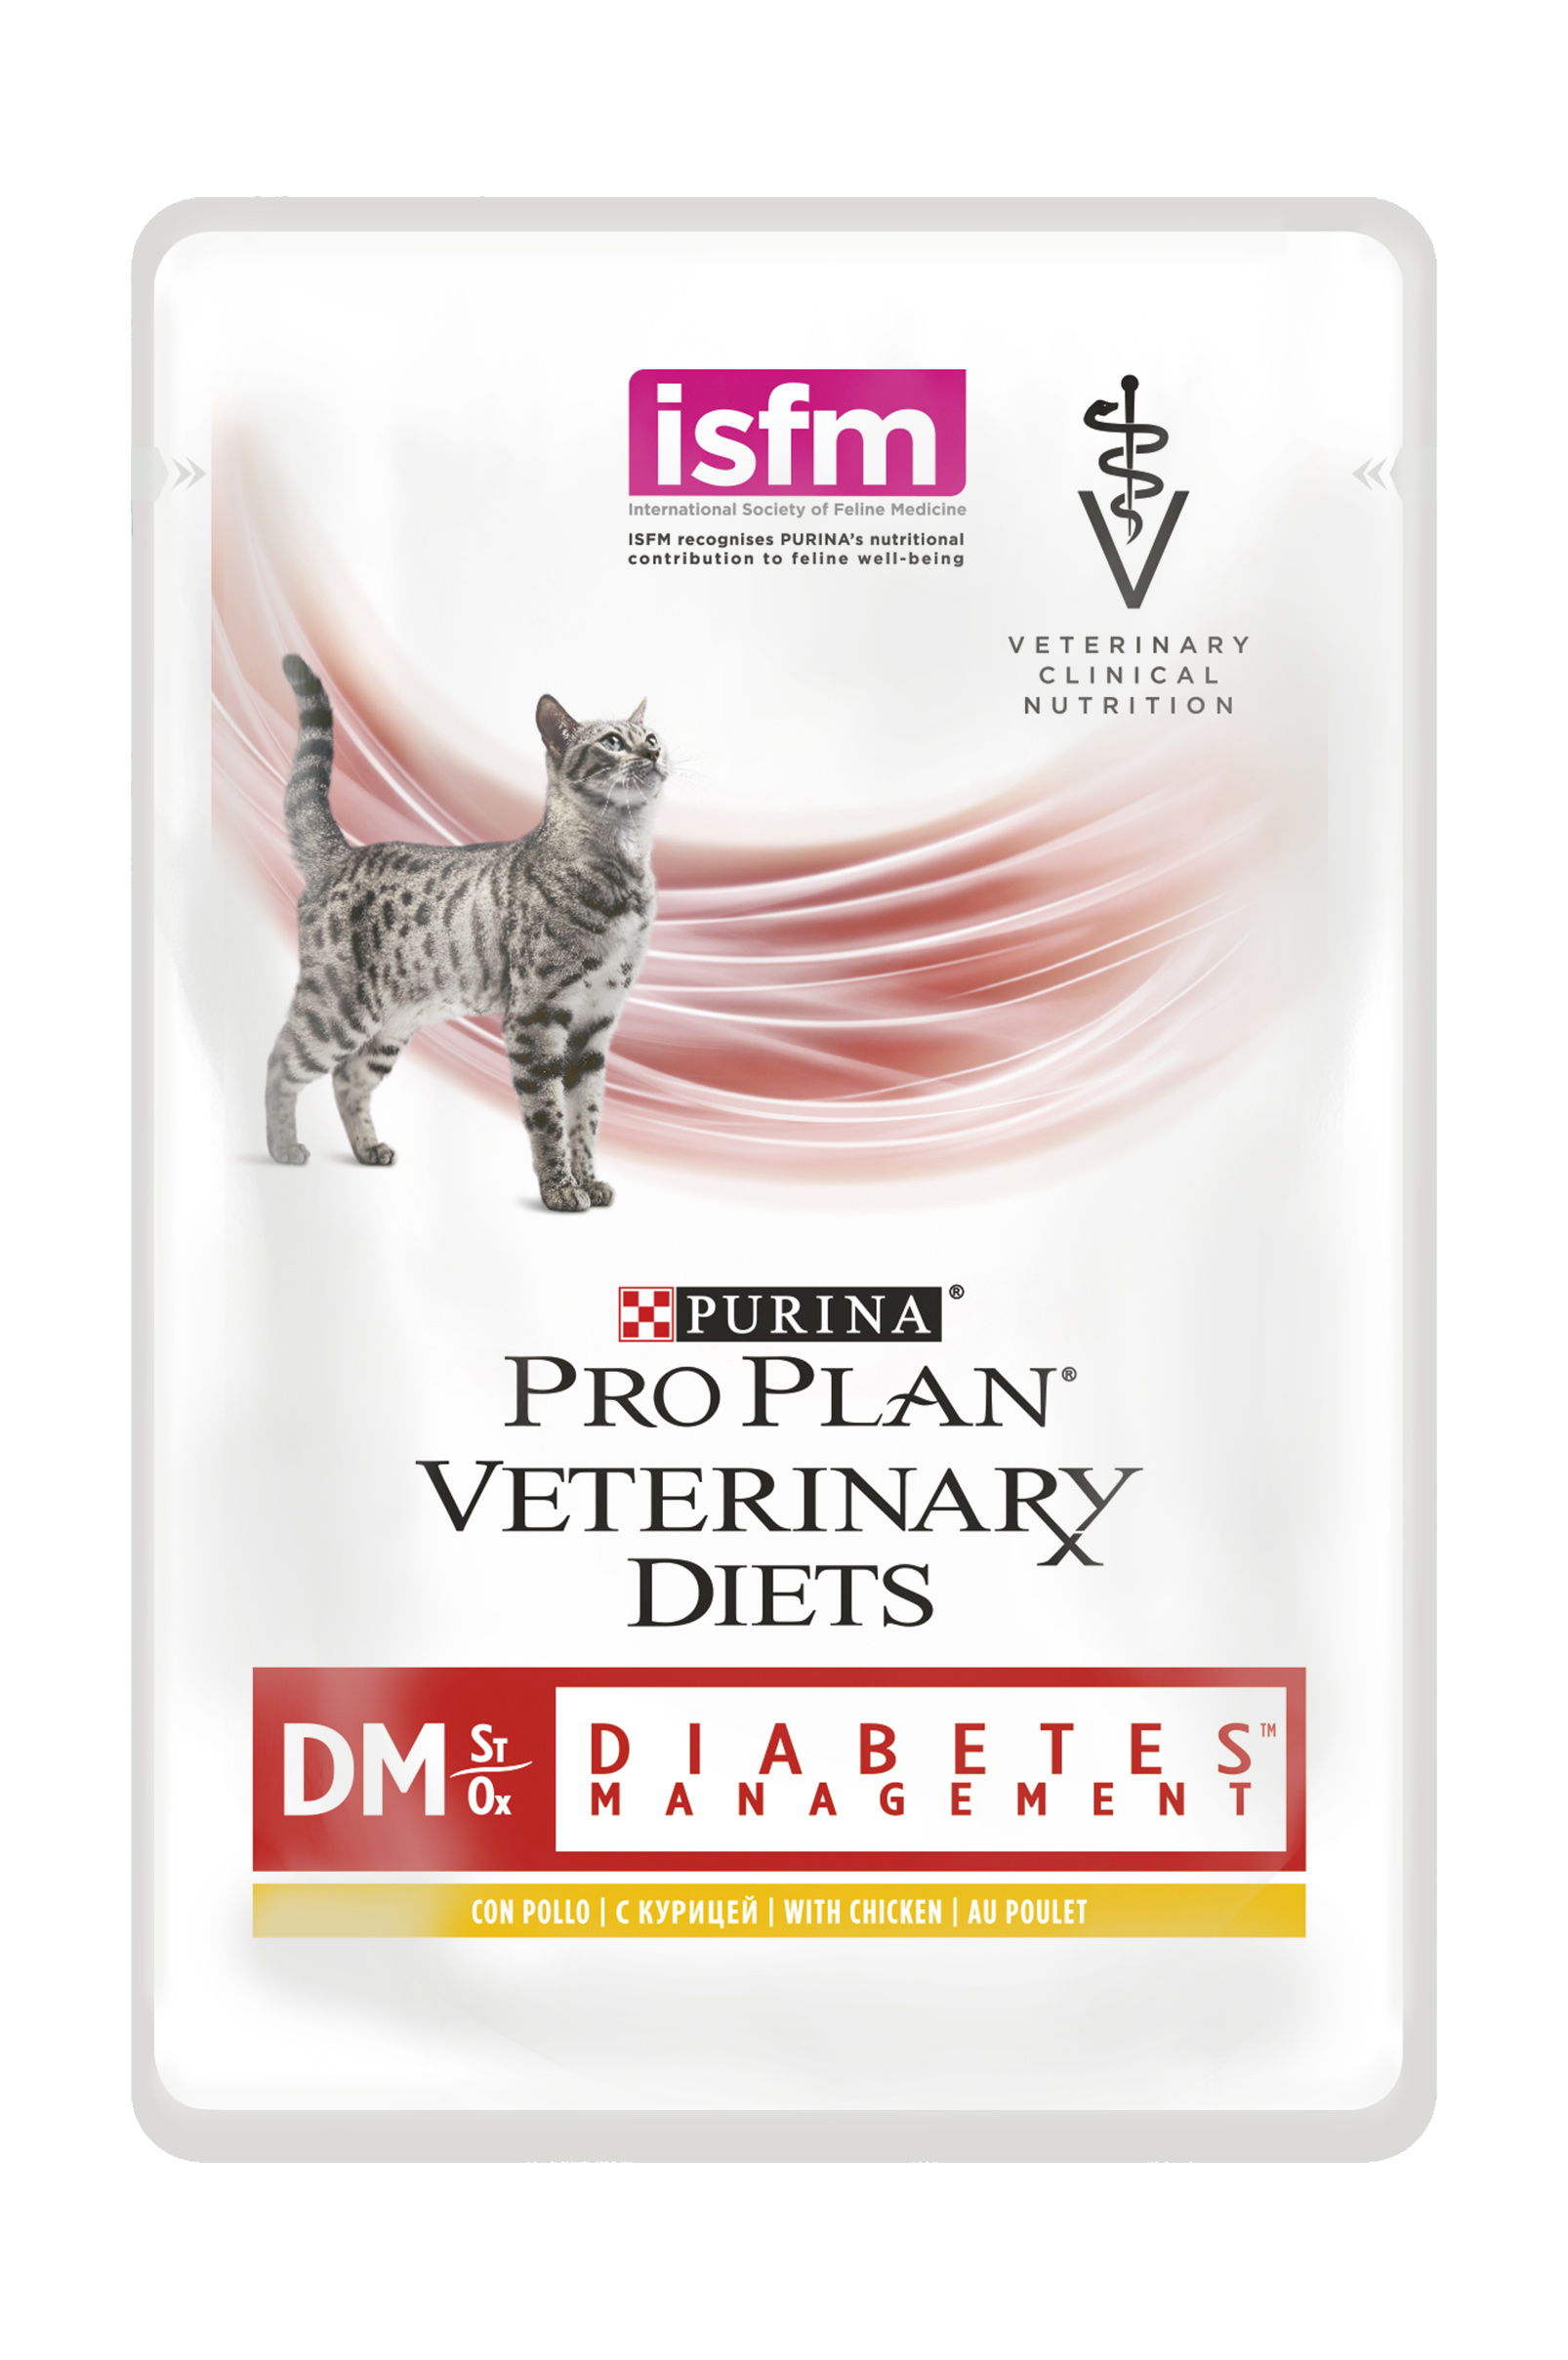 Купить Консервы Purina Pro Plan Veterinary Diets DM для кошек с диабетом, курица, пауч, 85 г в интернет магазине товаров для животных. Интернет магазин зоотоваров в Москве, корма и другие товары для животных